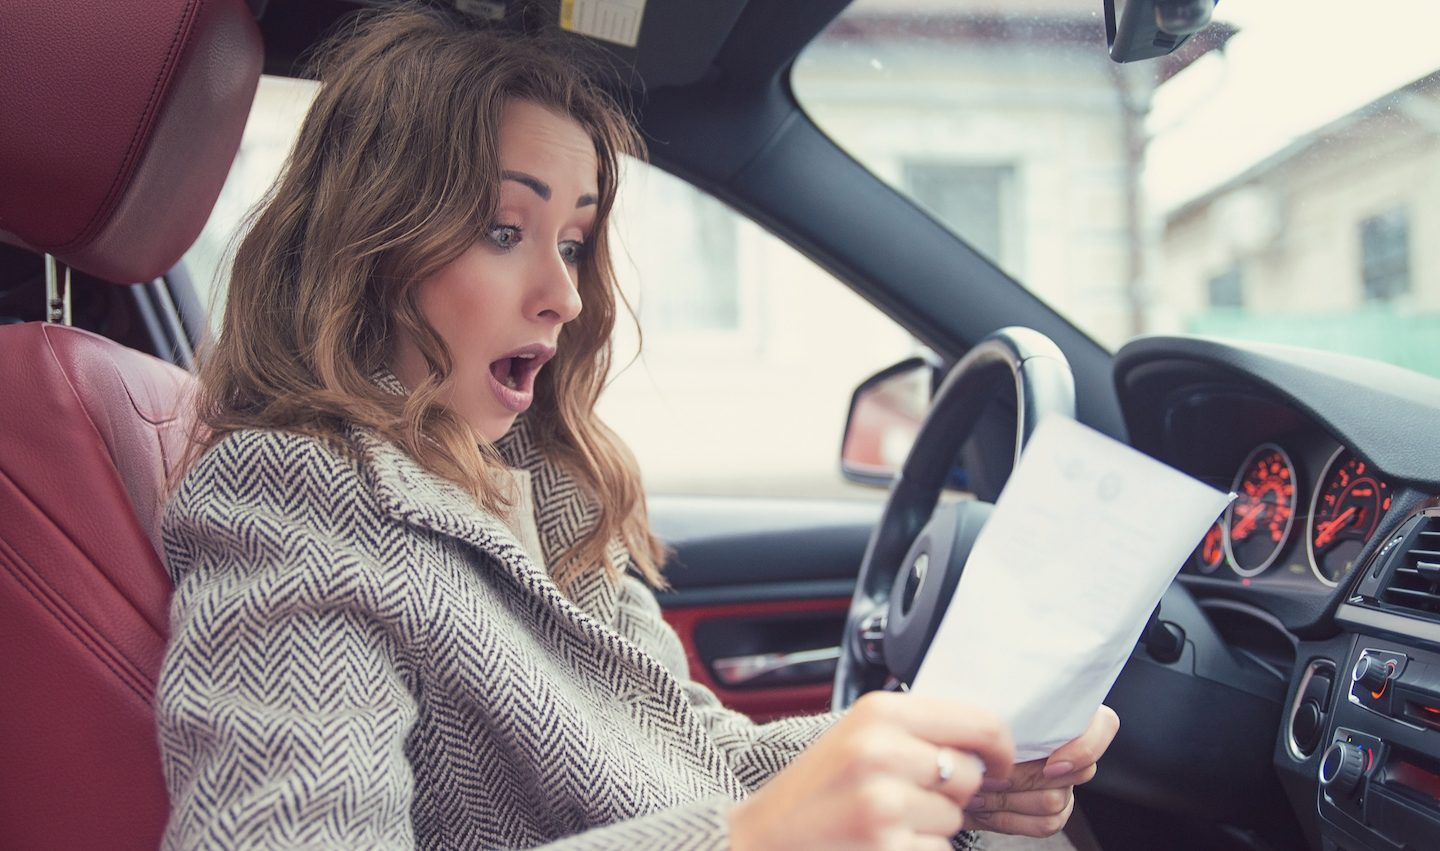 woman shocked because can't pay car loan